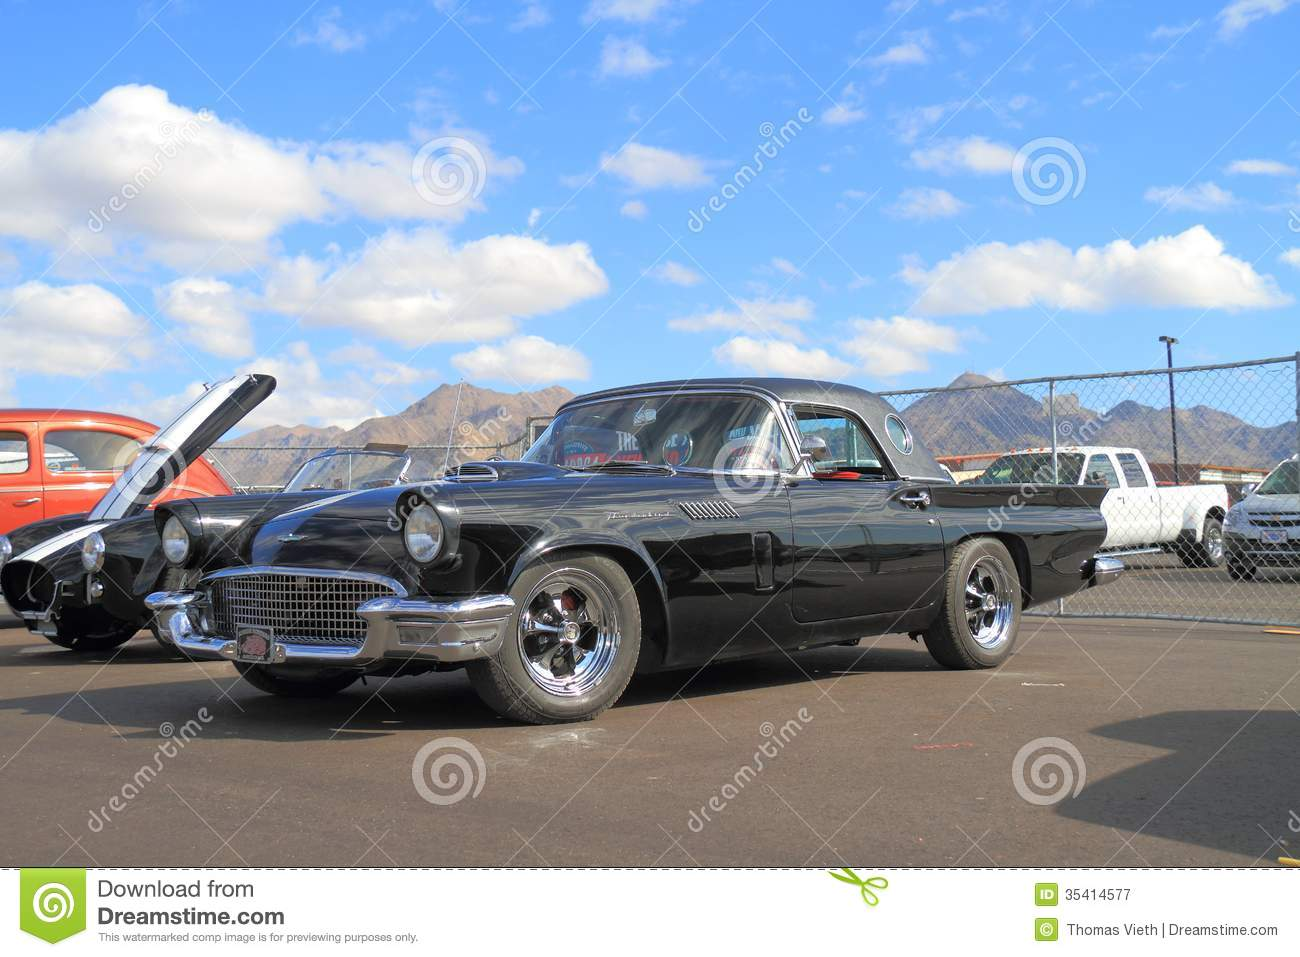 classic car 1957 ford thunderbird editorial photography image 35414577. Black Bedroom Furniture Sets. Home Design Ideas